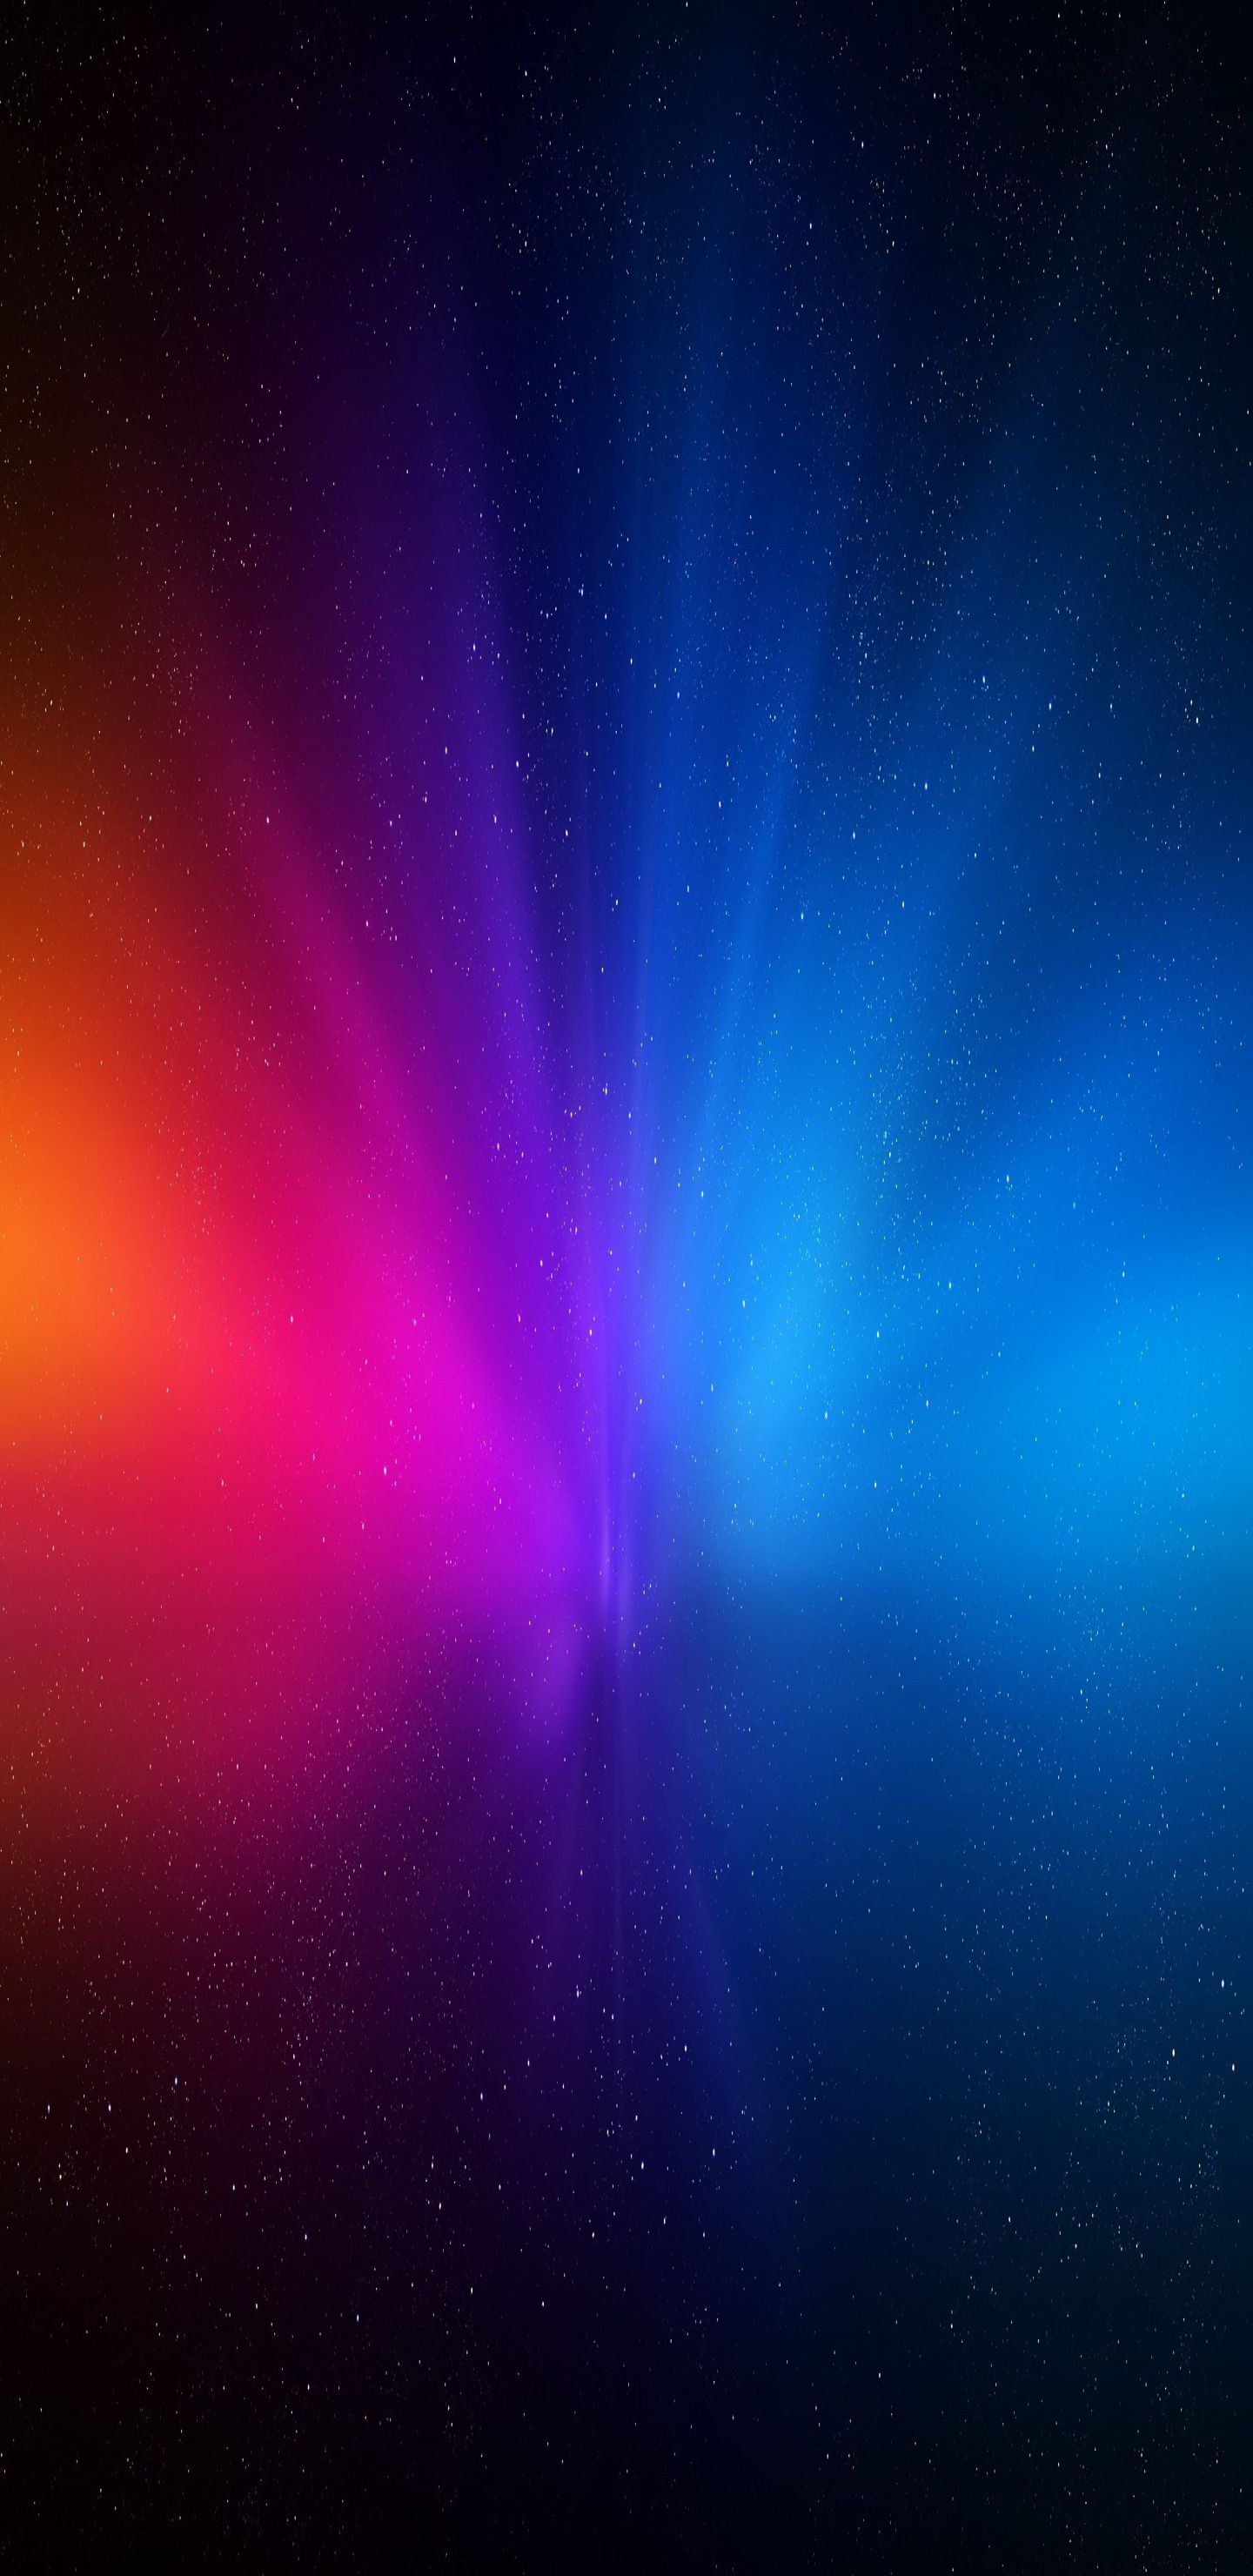 Blue, red, purple, space, minimal, abstract, wallpaper